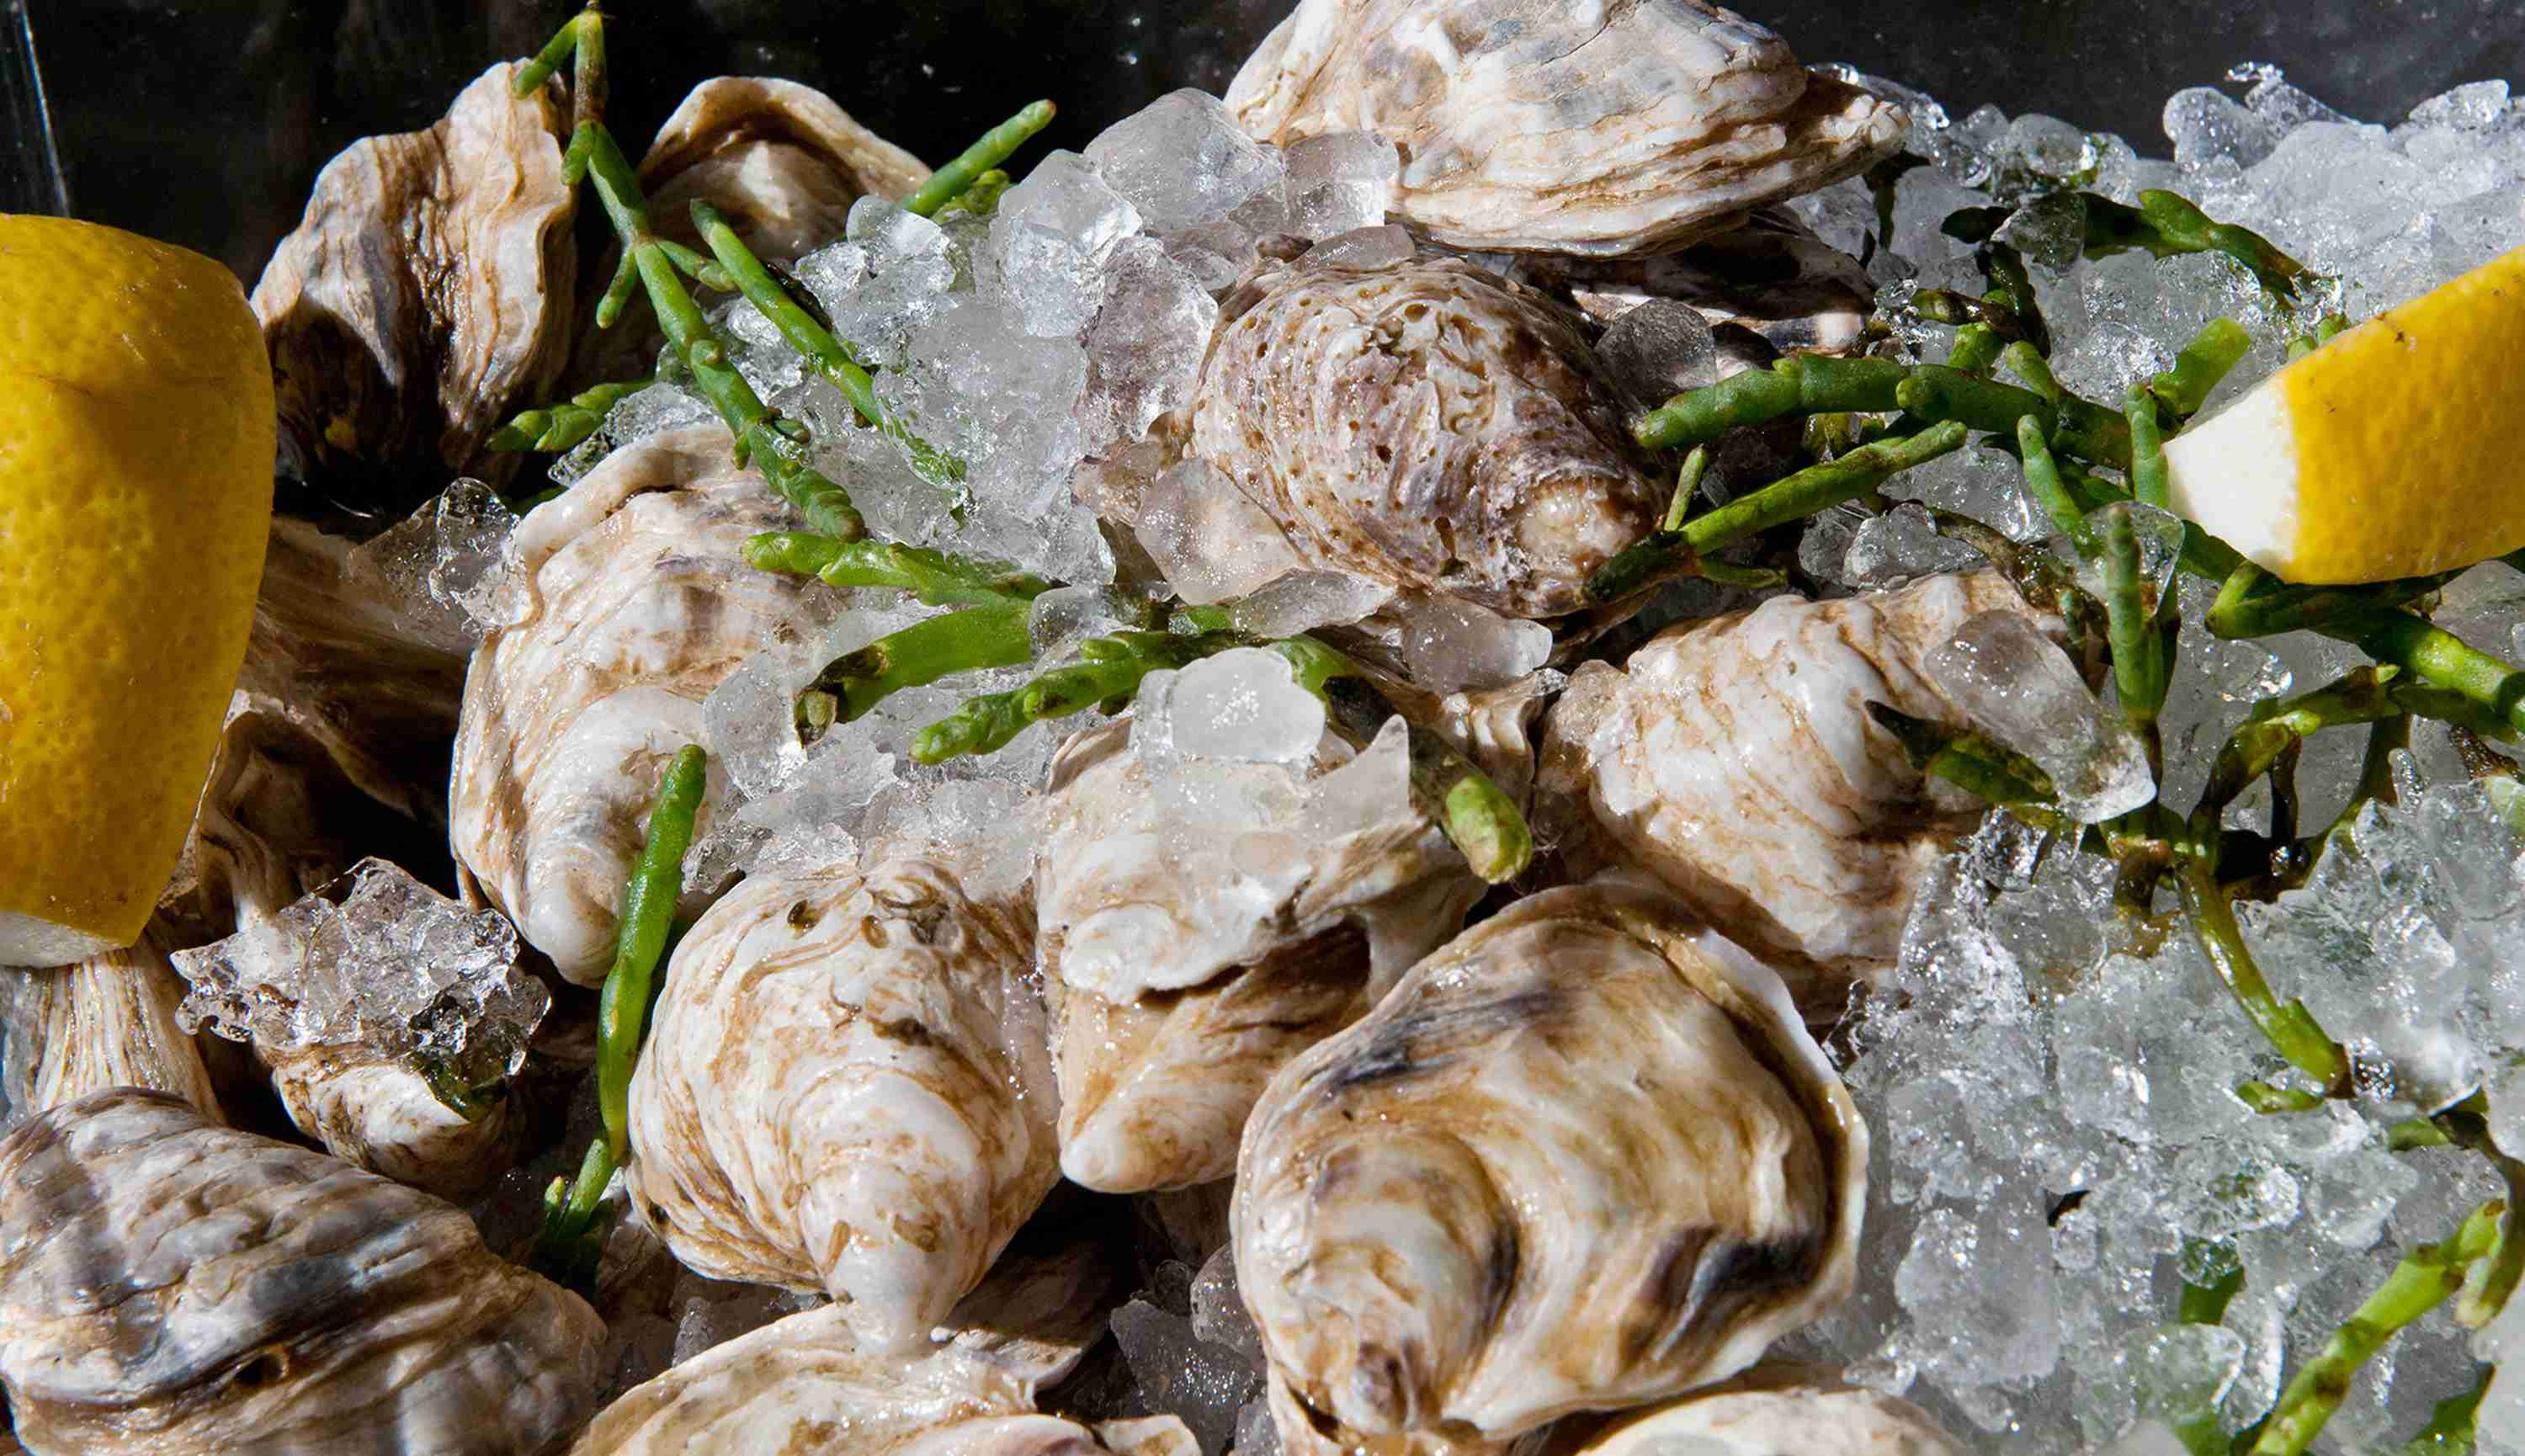 Oysters on Ice at db Bistro and Oyster Bar